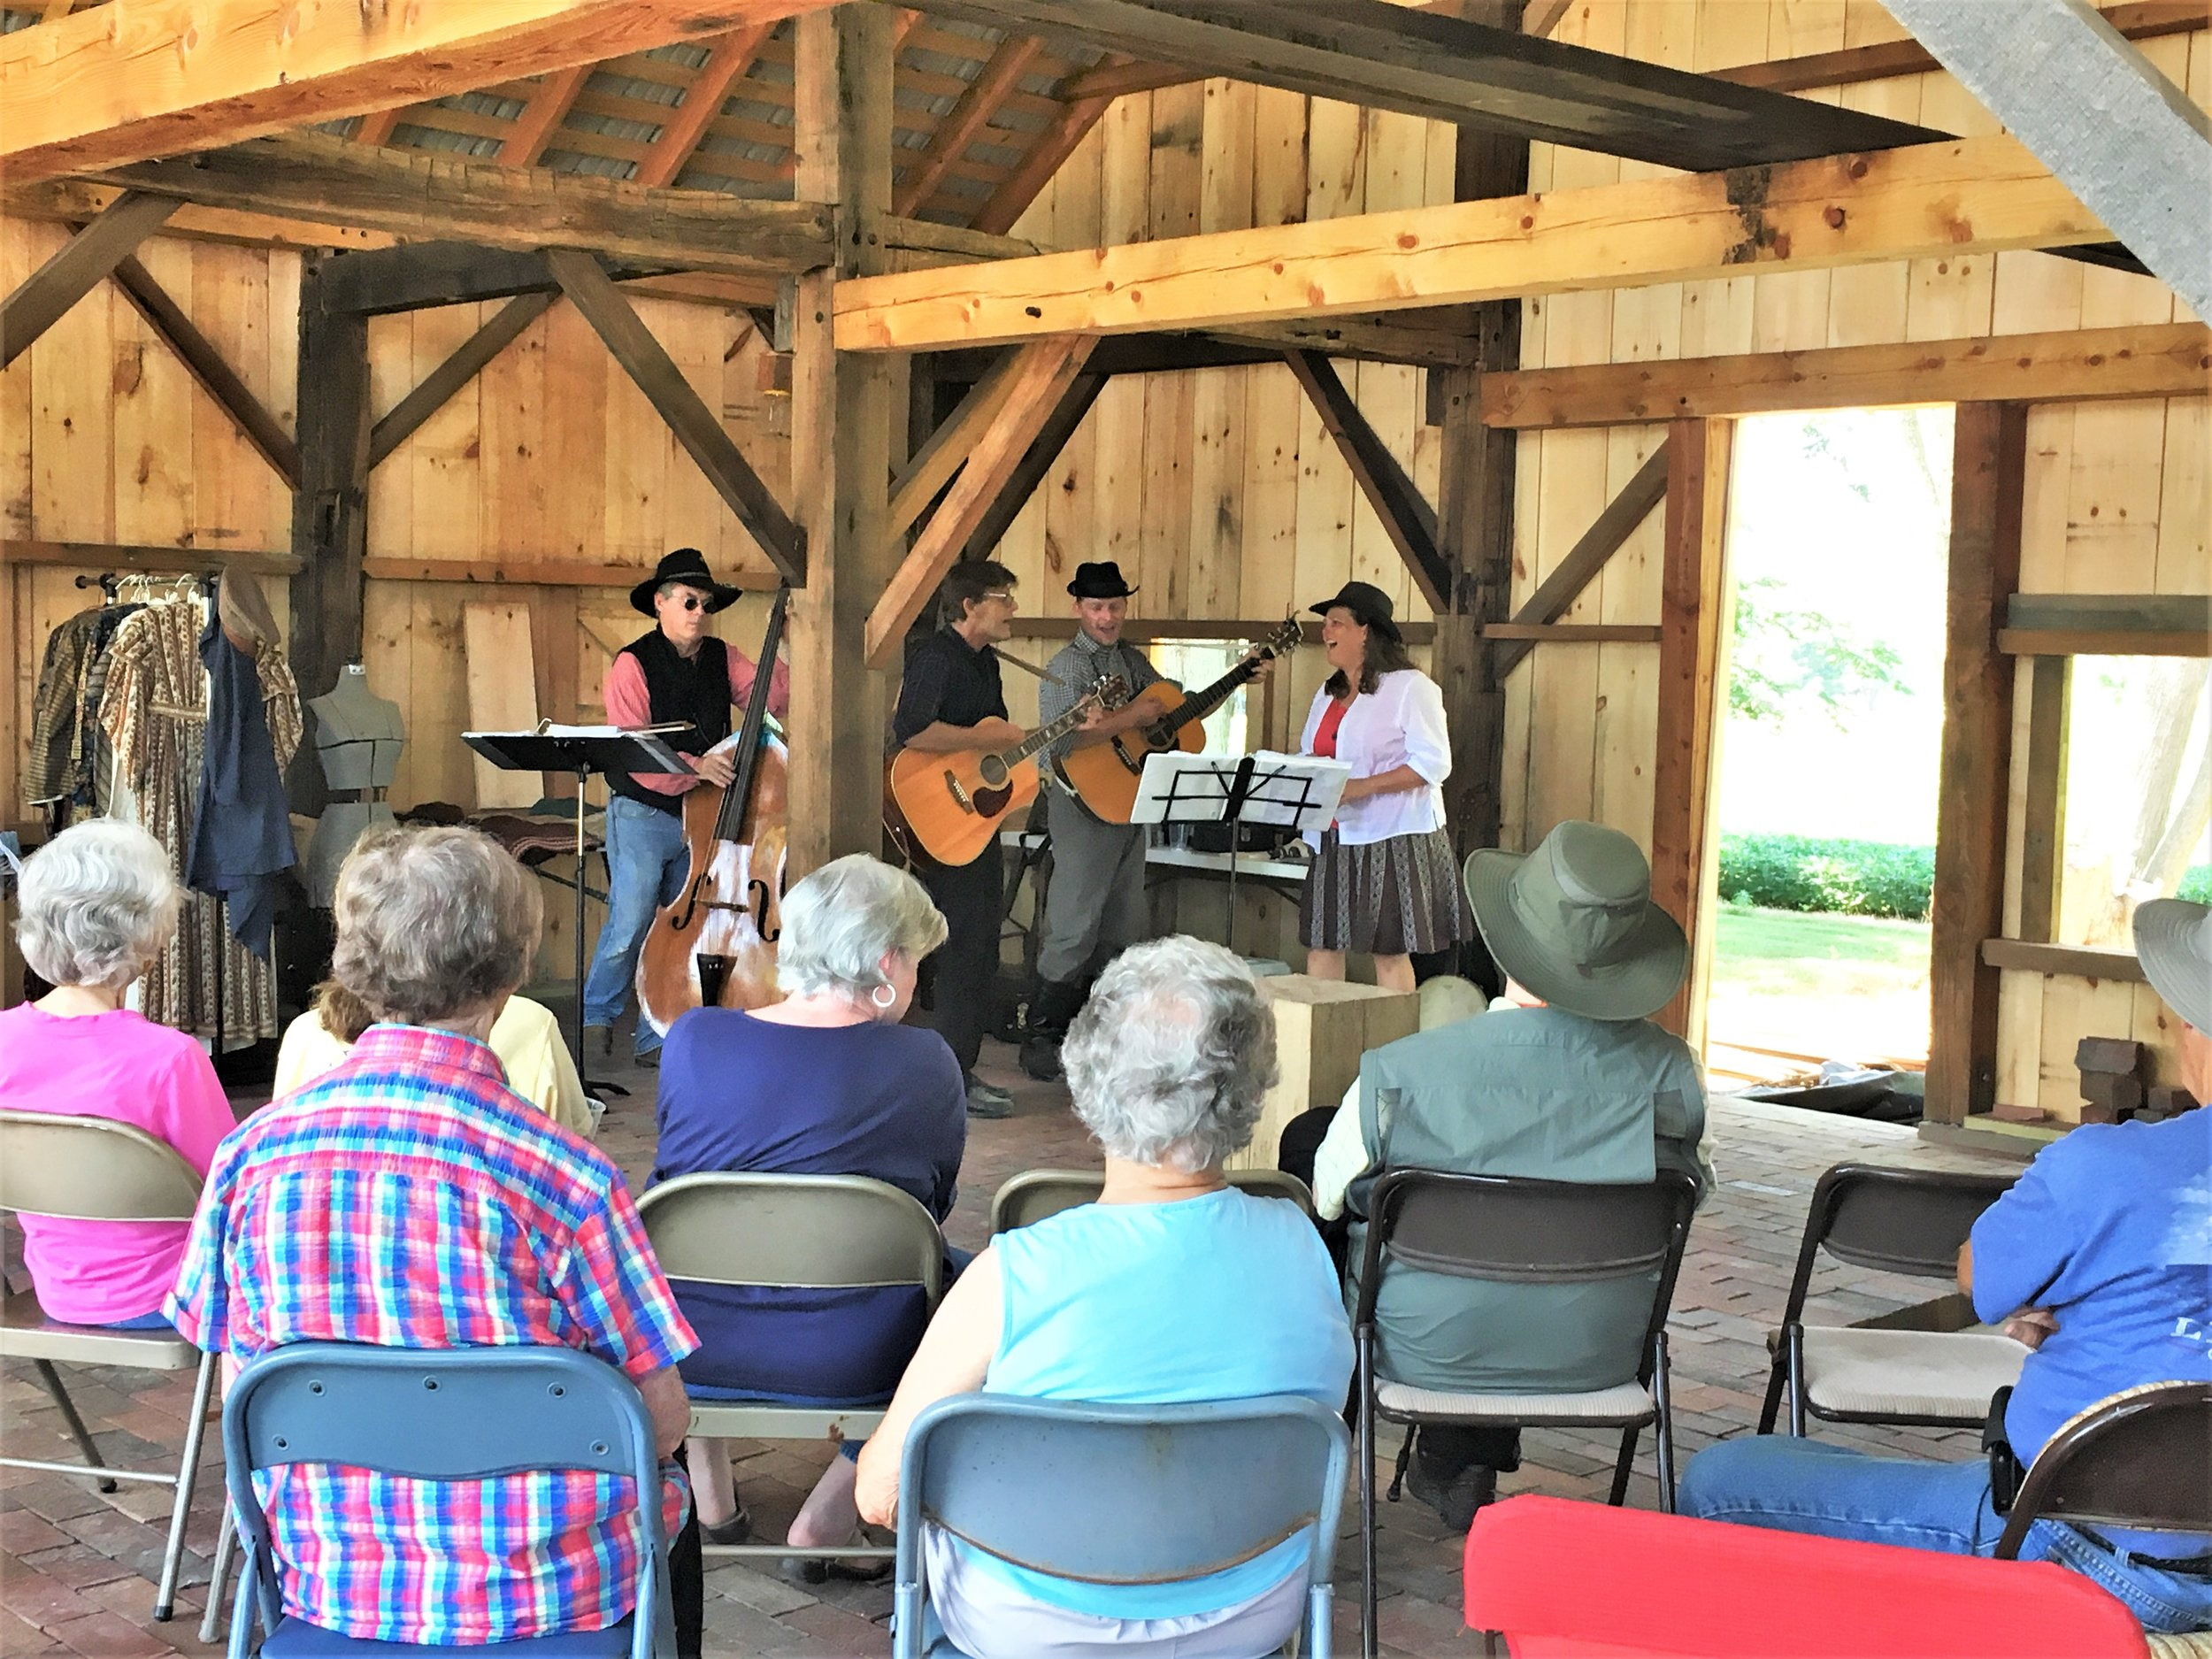 The 2019 Summer programs have been held in the new barn. Above the band Big Blue Mountain performs on August 4th.